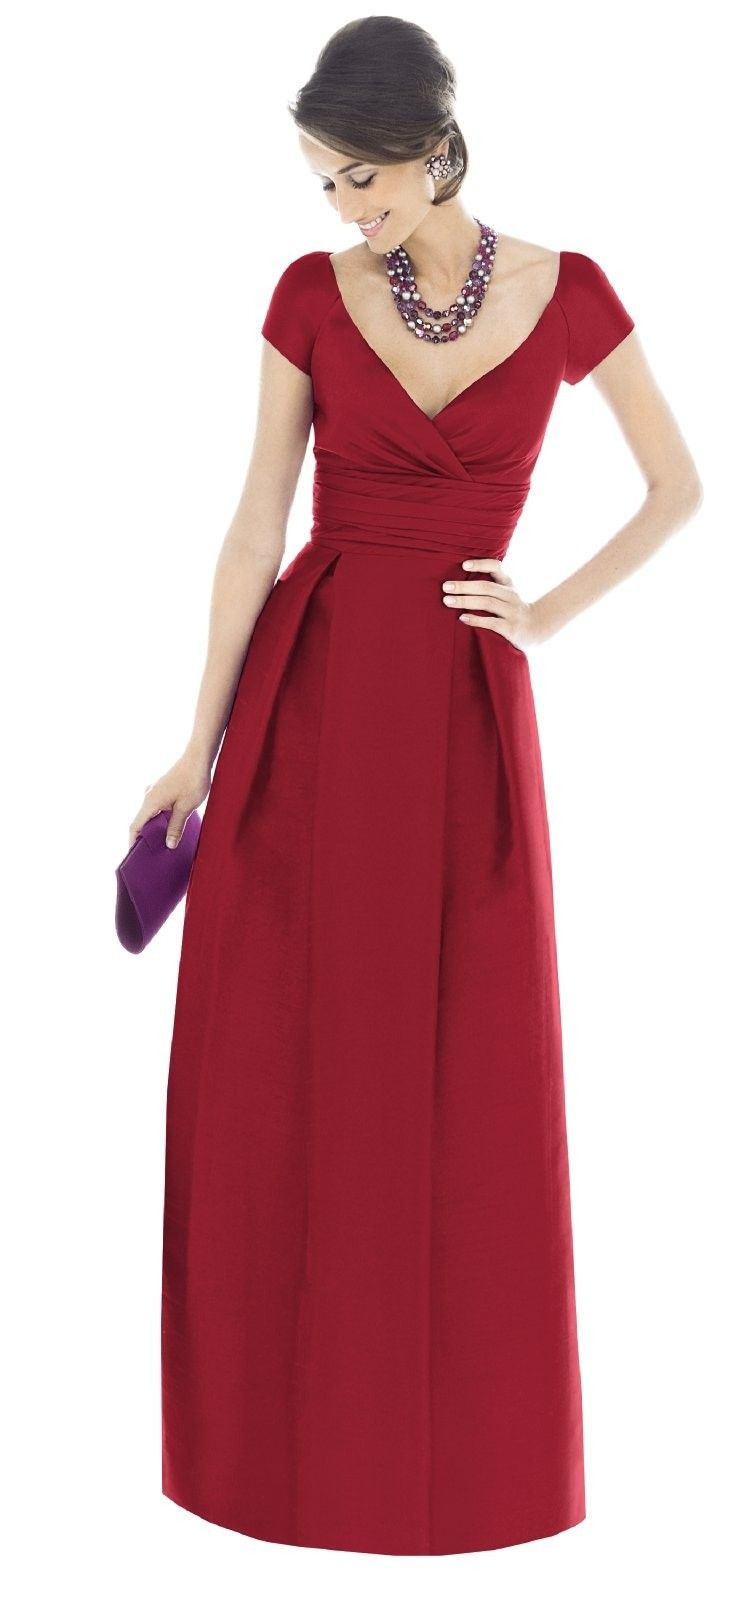 Style d dupioni alfred sung bridesmaid dress weddington way